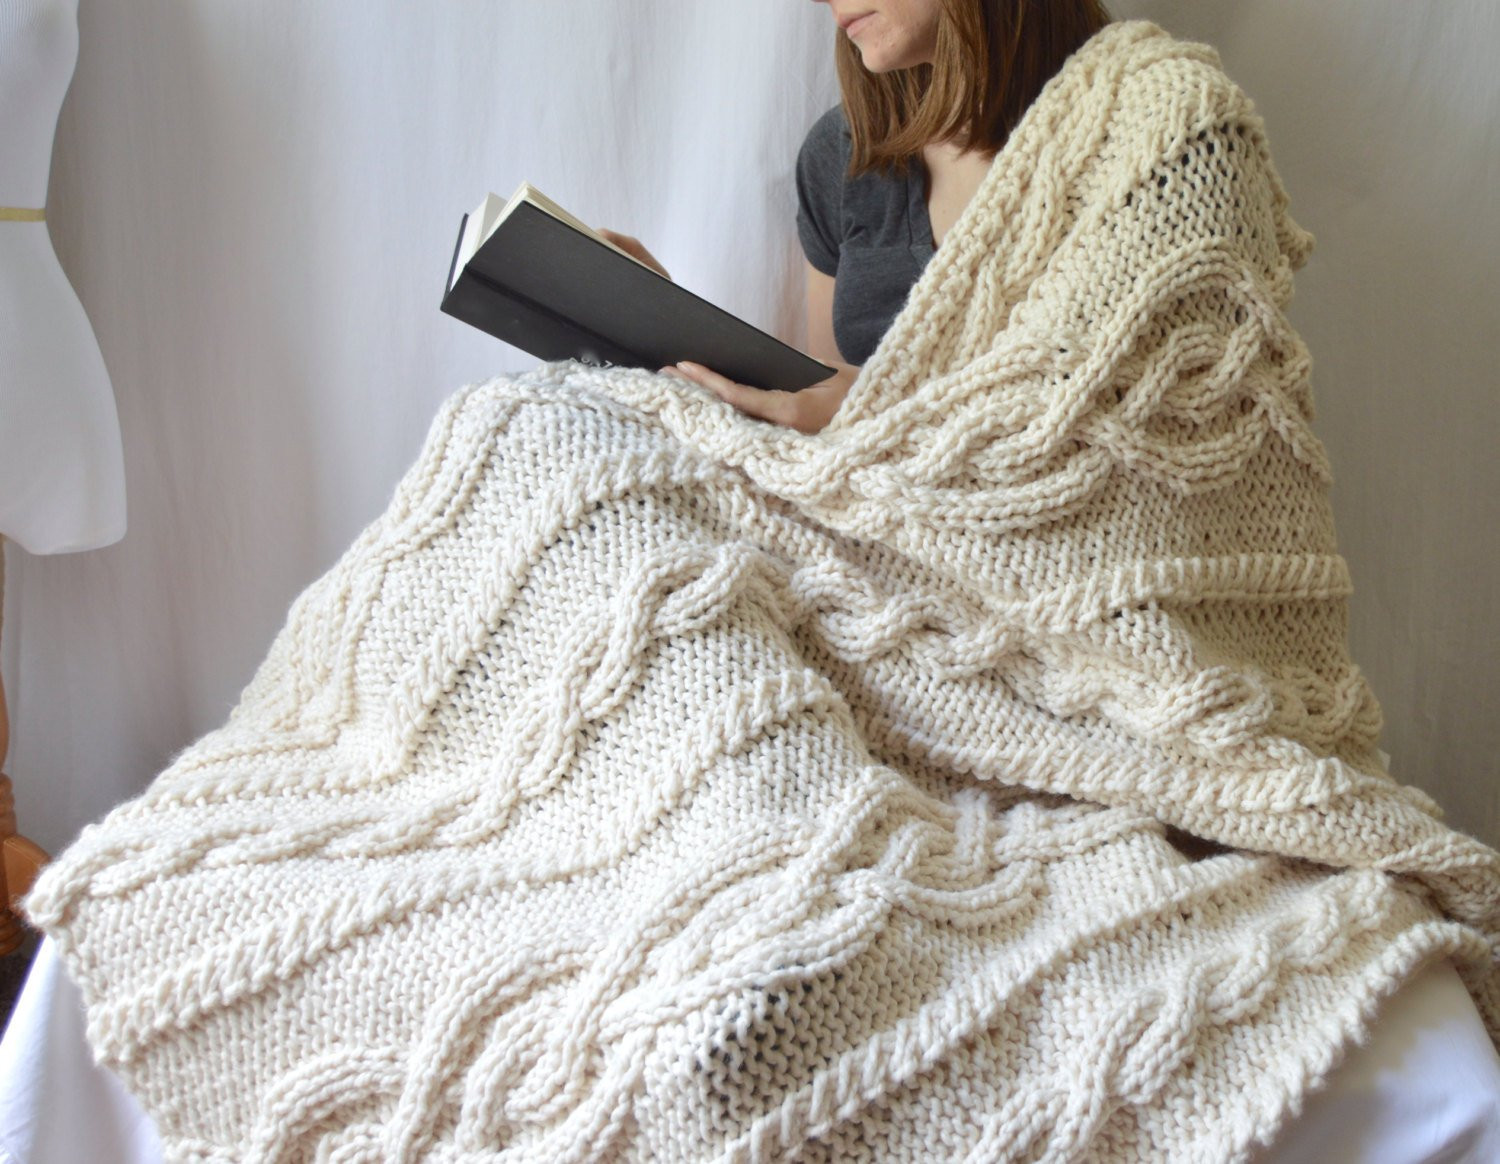 Chunky Knit Throw Inspirational Chunky Knit Cable Throw Blanket Knitting Pattern Pdf Of Superb 50 Pics Chunky Knit Throw